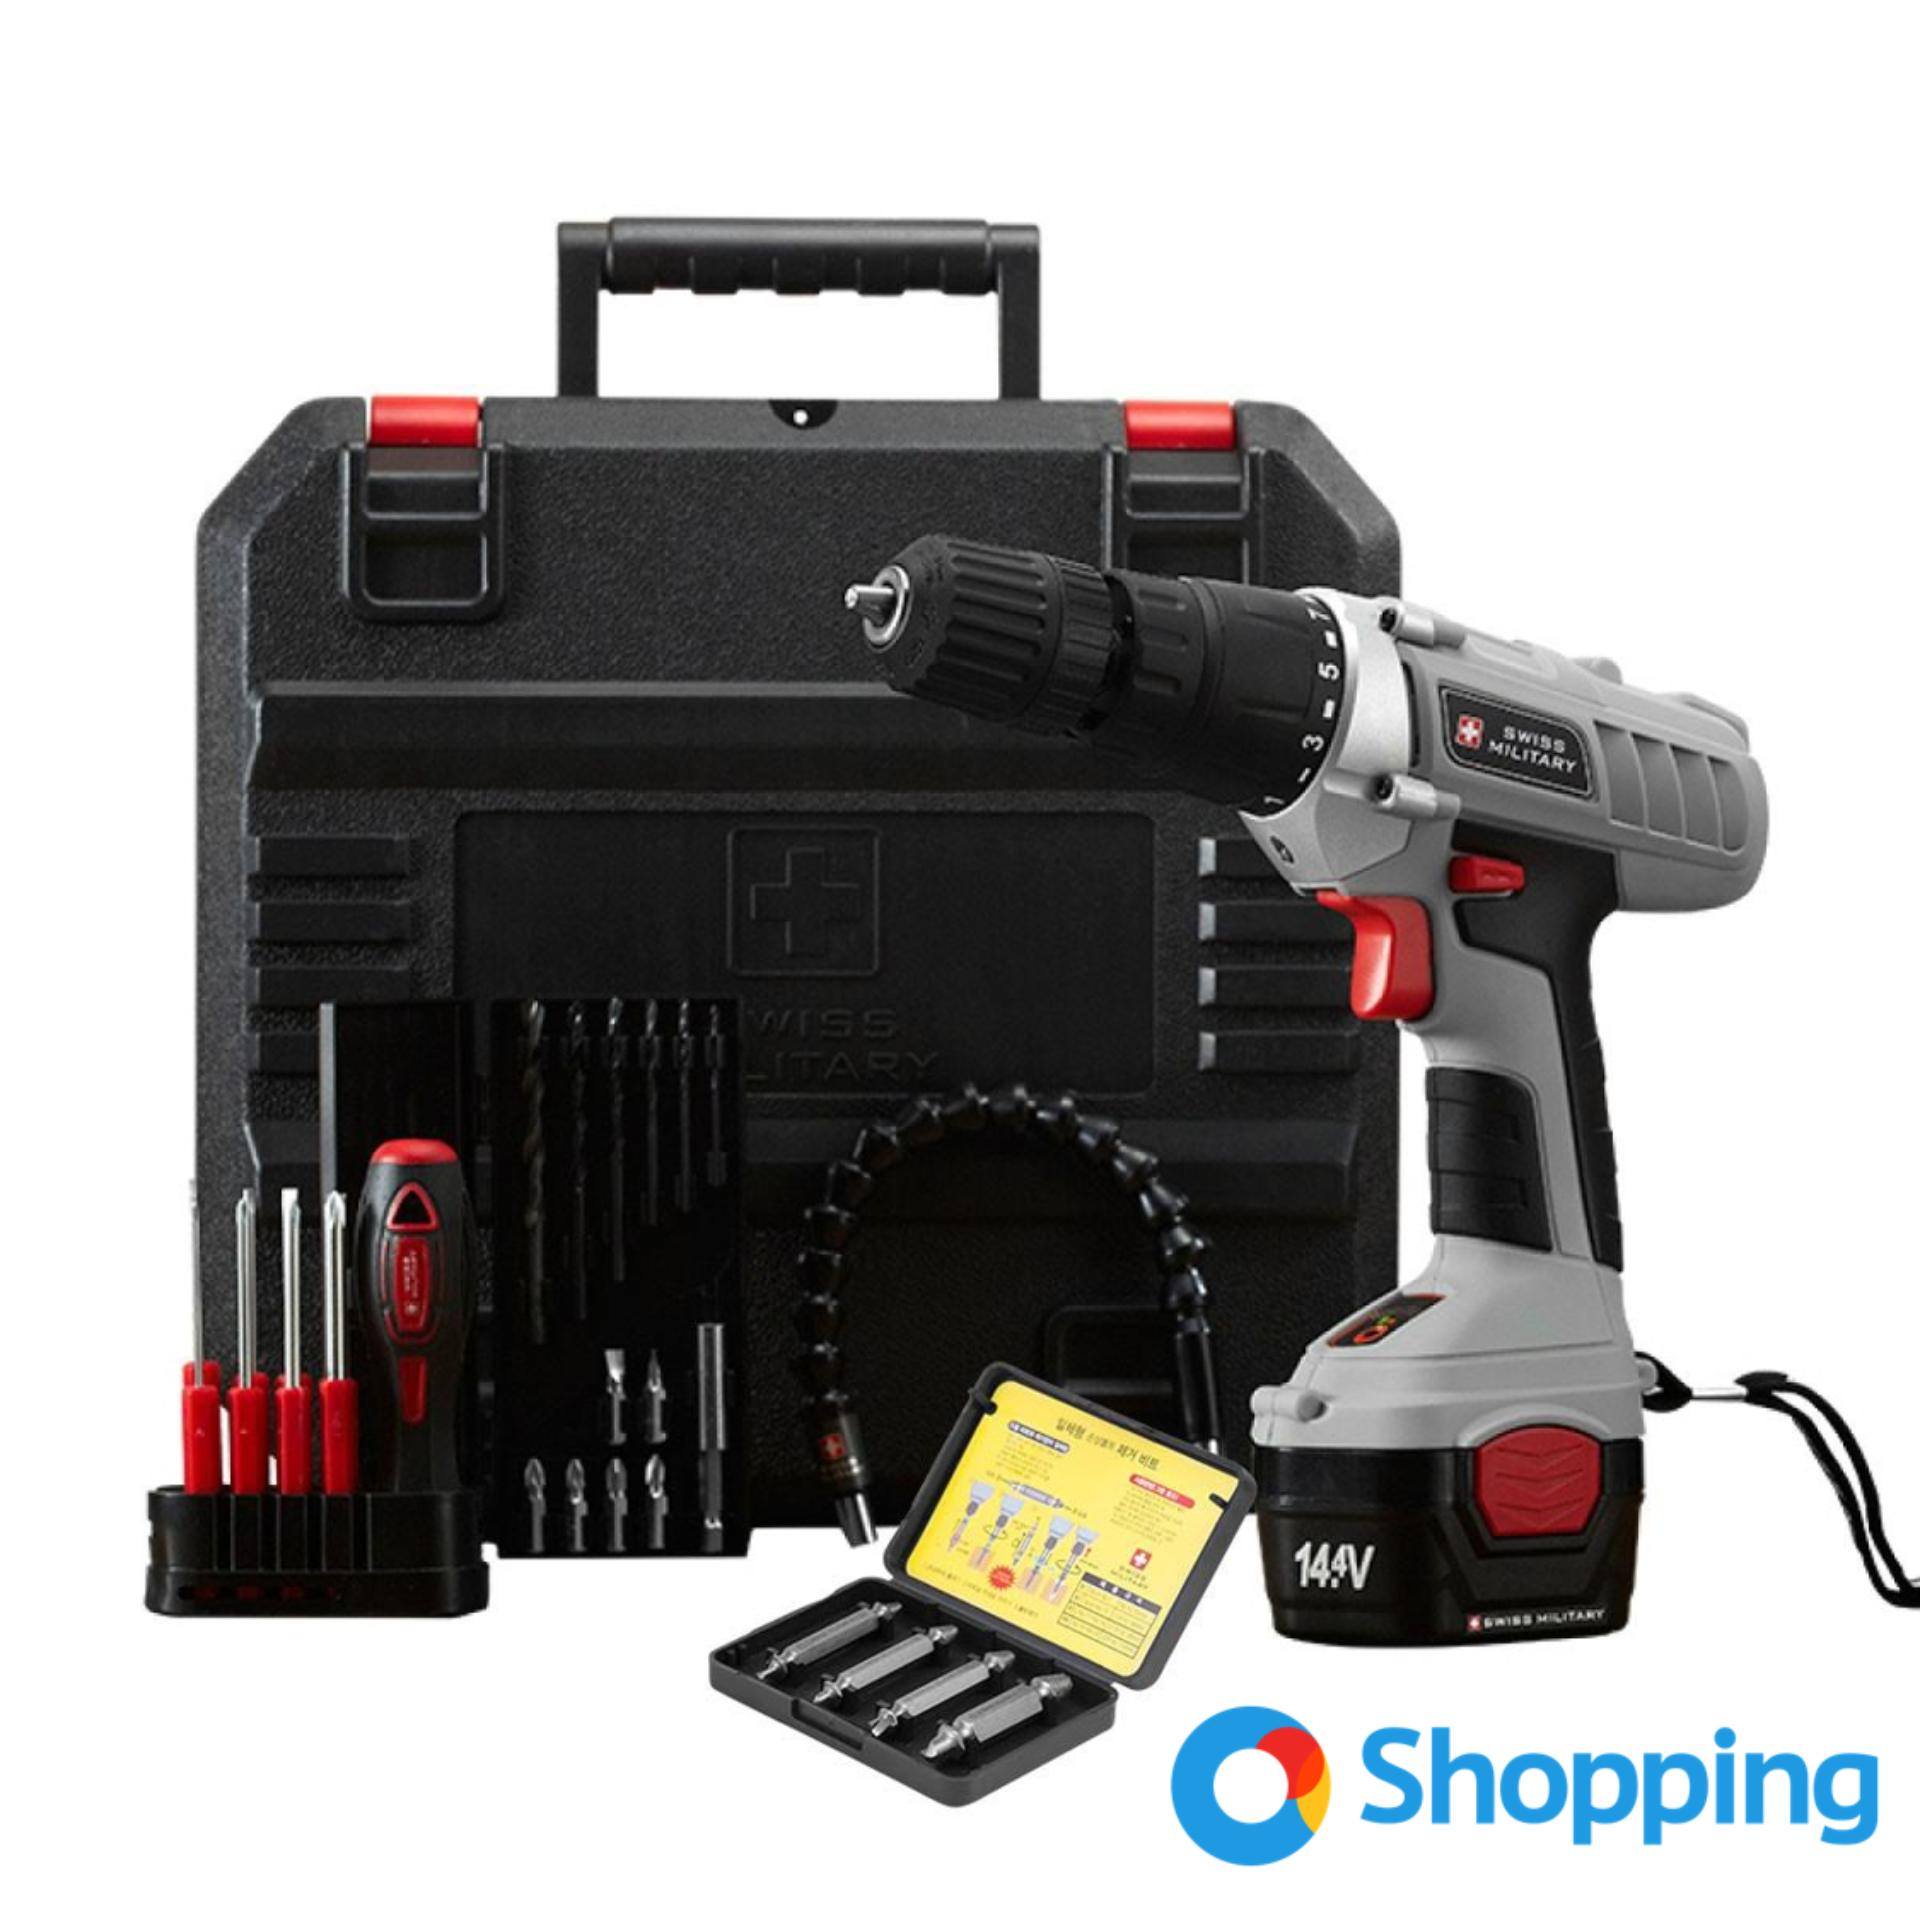 Swiss Military Cordless Hammer Drill Set With Free Bolt Remover